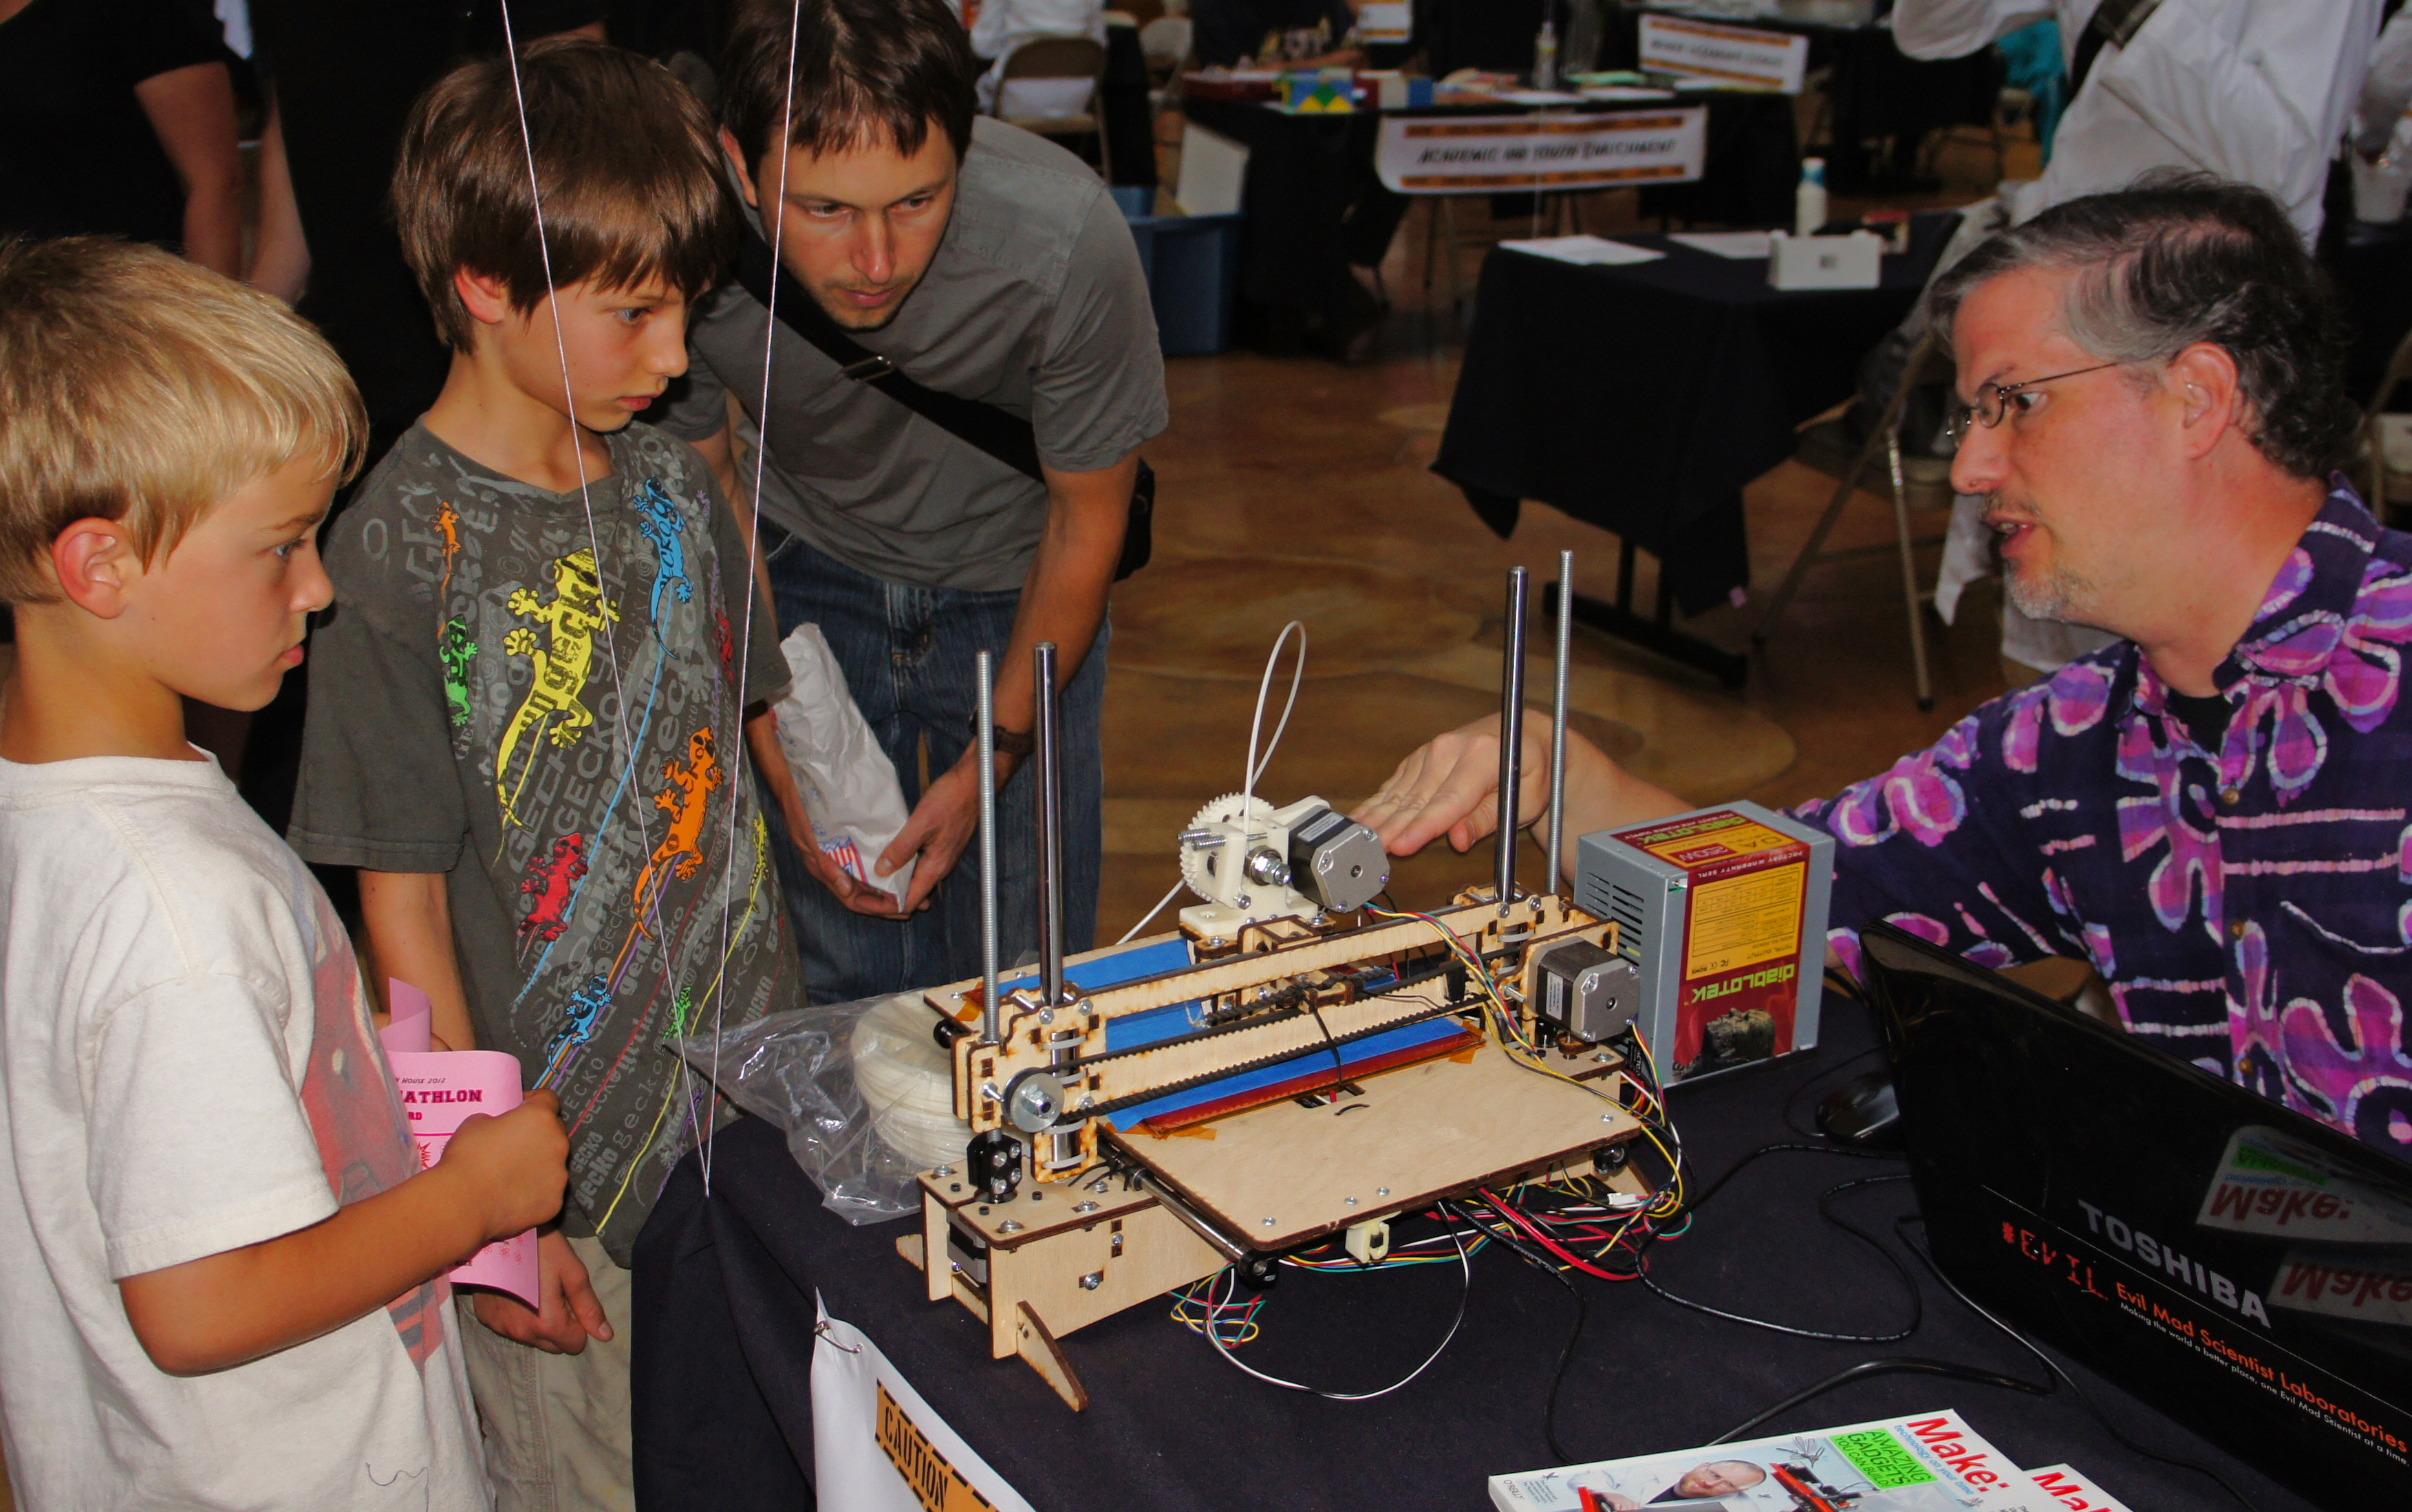 Mark with his printrbot